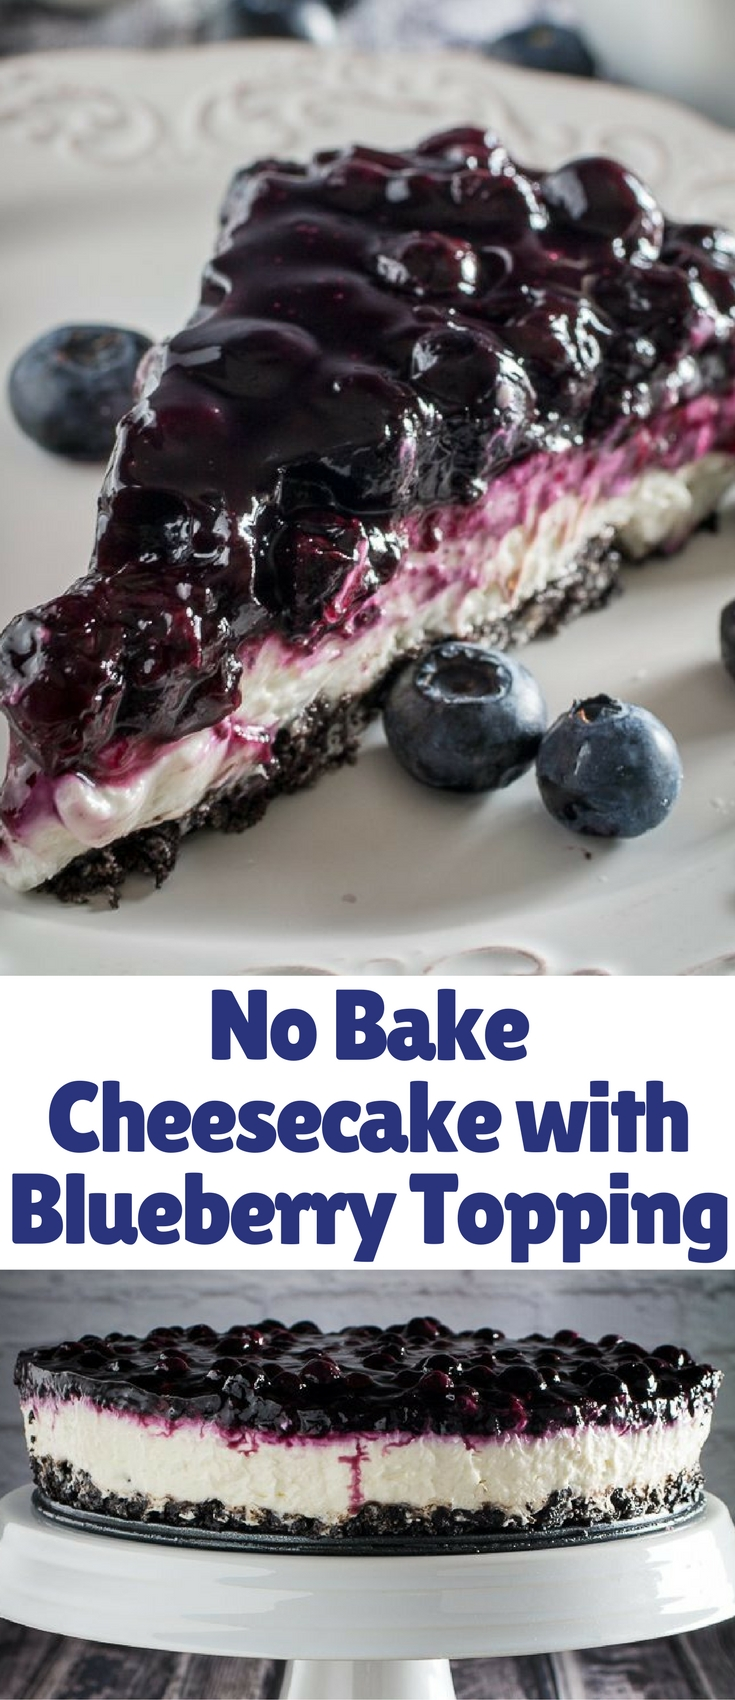 This deliciously creamy no bake dessert is perfect for summer days when it's just too hot to cook, but you still want something sweet to eat!